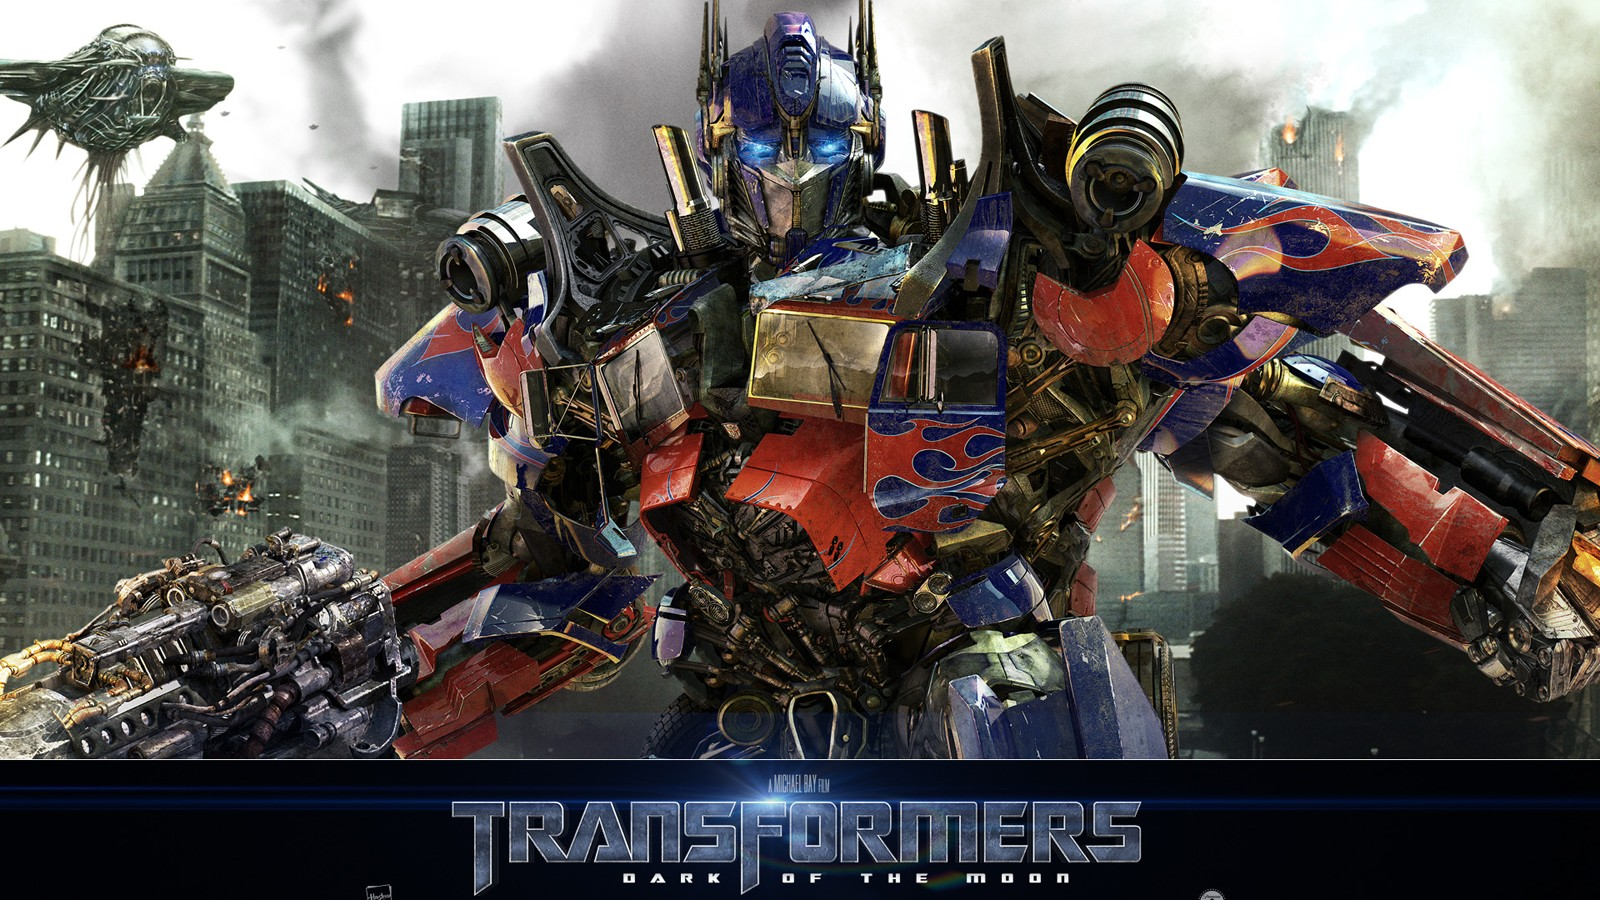 Transformers, when on the black 29680